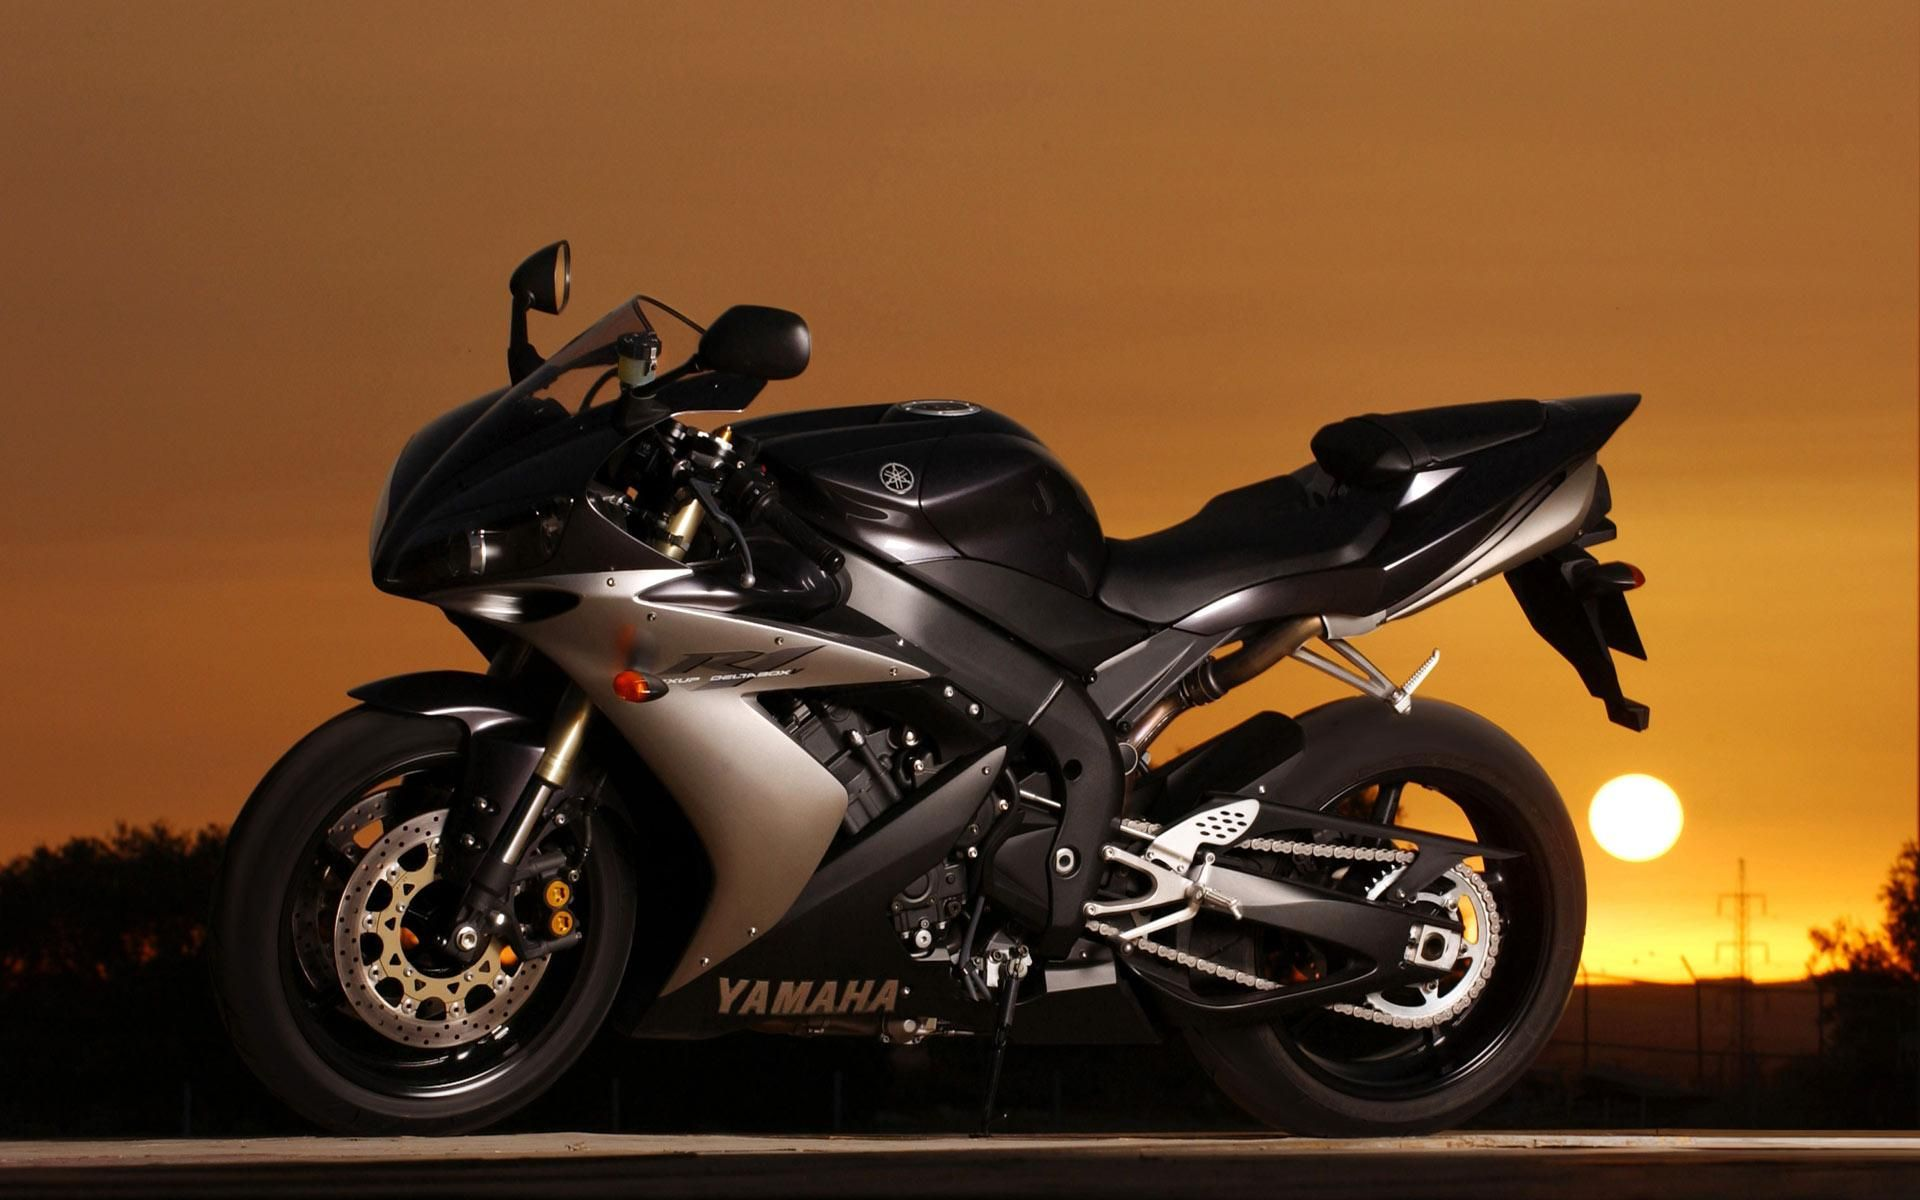 Hd wallpaper yamaha r1 - Are You Looking For Yamaha R1 Hd Wallpapers Download Latest Collection Of Yamaha R1 Hd